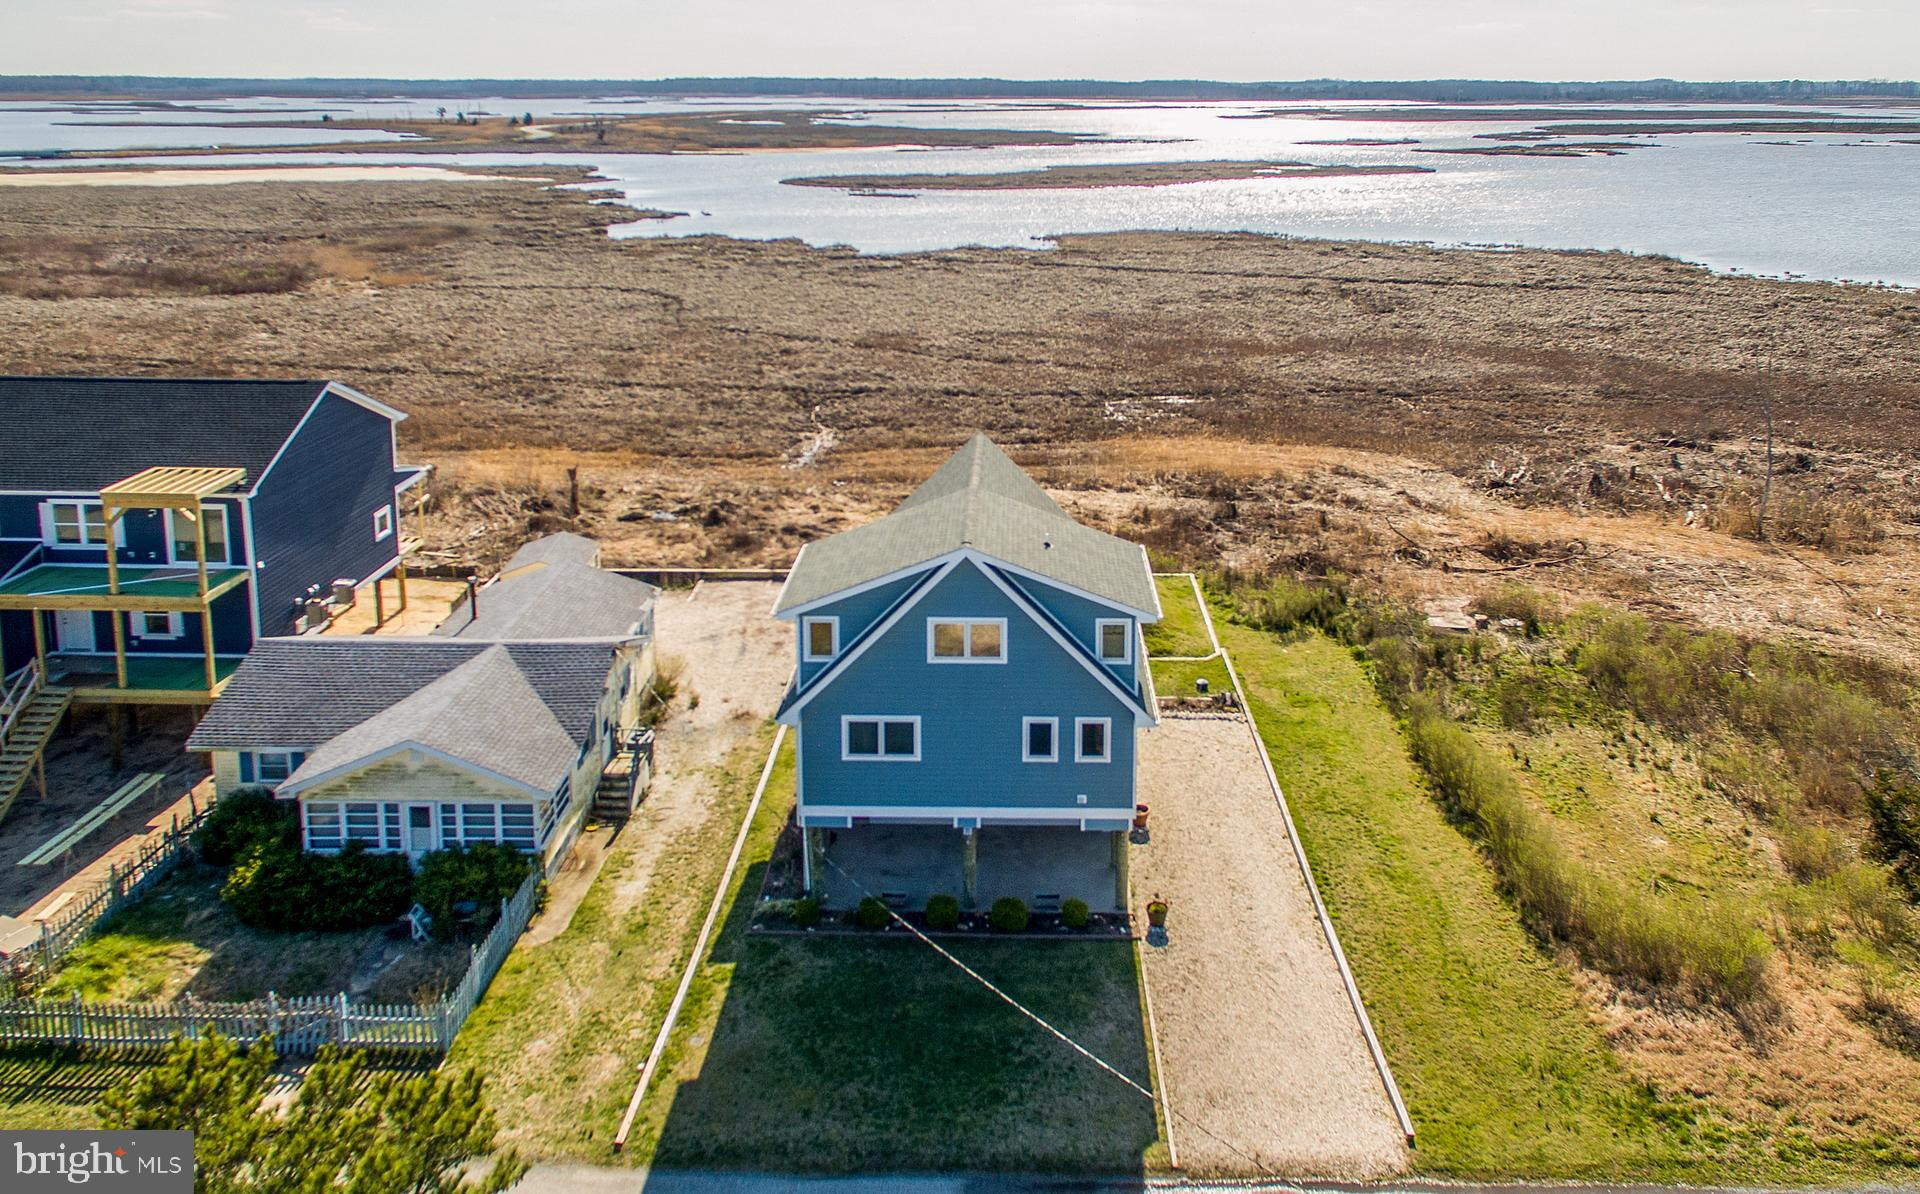 A Little Slice of Heaven! This Pristine home located with stunning views of the Prime Hook Wildlife Refuge allows for tranquil days on the private beach directly across the street to enjoy hours on the calm waters of the Delaware Bay. Just entering this sun filled open floorplan home will amaze you with the  living area that features a beautiful tongue and groove ceiling, huge granite island for entertaining, gas fireplace and the large rear deck of this property allows for privacy and the most spectacular sunsets.  Large windows throughout overlooking the Refuge allows for an expansive view to catch the amazing osprey, marsh hawks or barn swallows flying into your view with even a view over the kitchen sink! A master bedroom is on the same floor as the living area with full bath and wall mounted TV. Grand cathedral ceiling opens to upper loft/living area and bedroom with its own full bath, split HVAC system to fine tune temperature. Great views of the Delaware Bay from this level as well. Last but not least this property features a brand new outdoor shower an abundance of storage under home for your beach equipment, Kayaks, and more. THIS IS A MUST SEE!!! Schedule your appointment today!